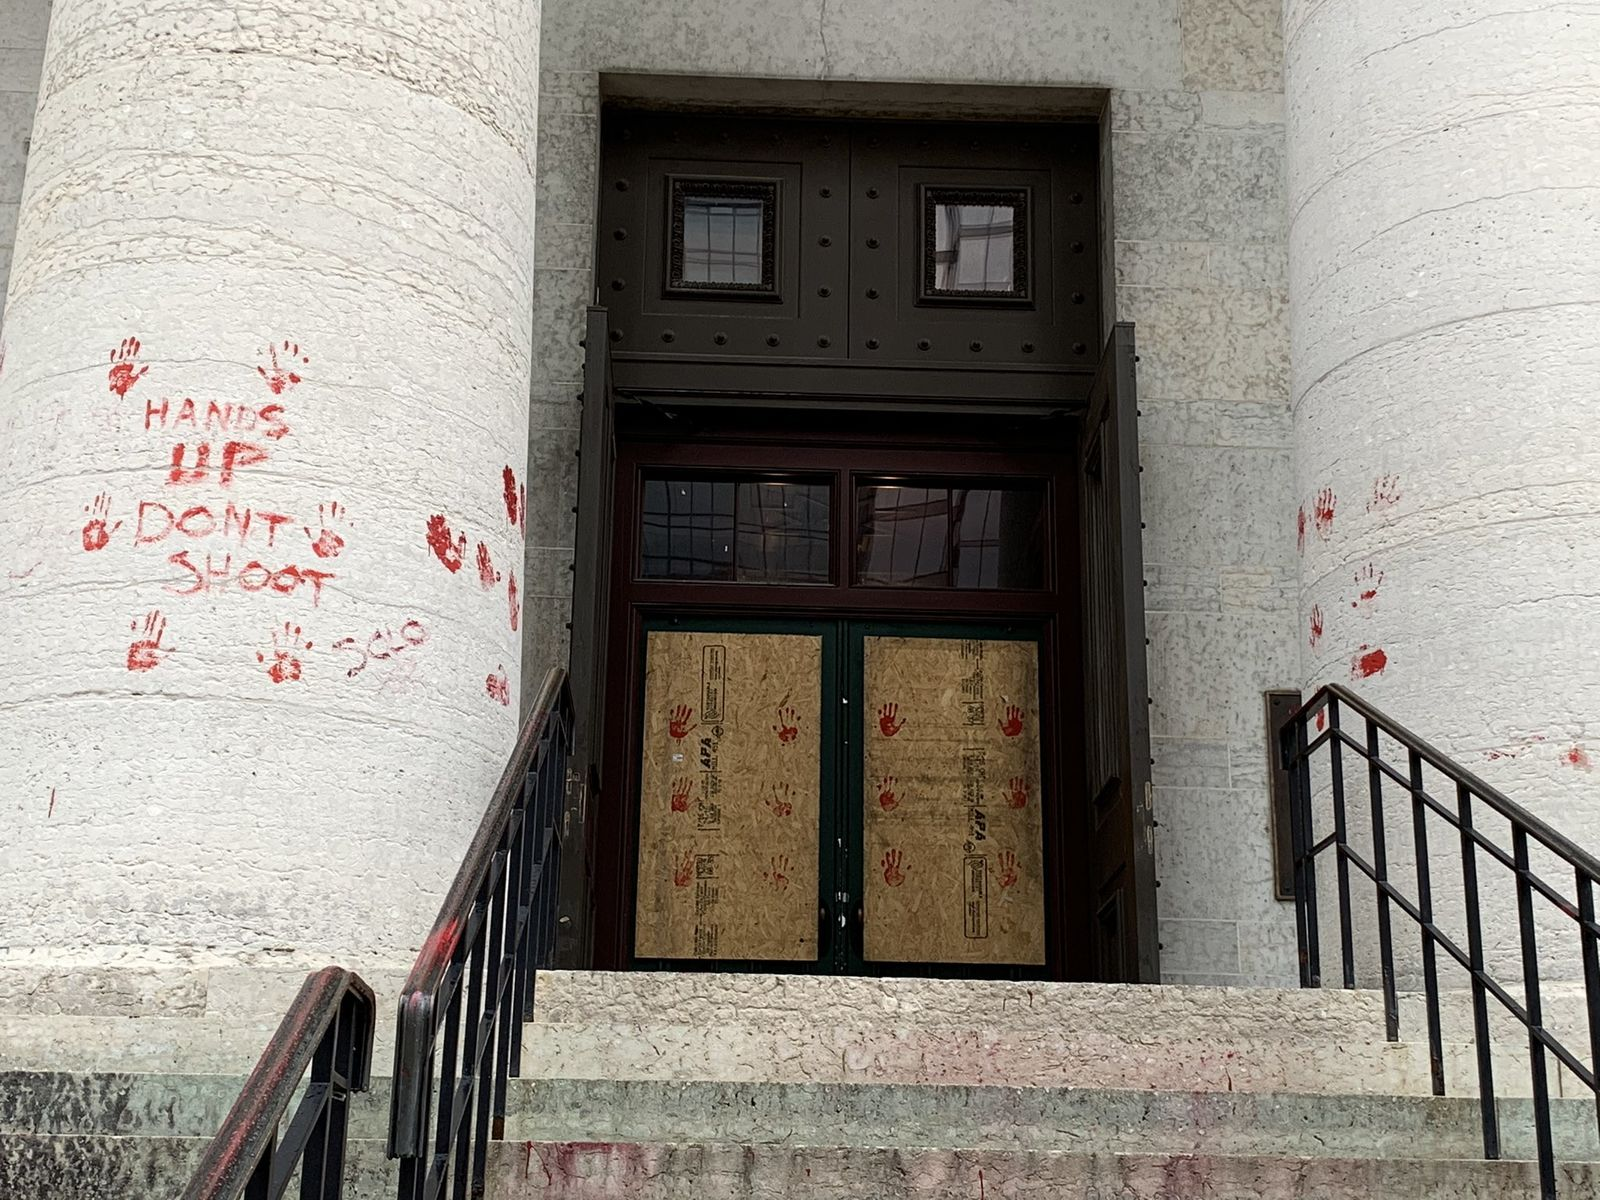 A group of protesters painted red handprints on the steps and walls of the Ohio Statehouse. (WSYX/WTTE)